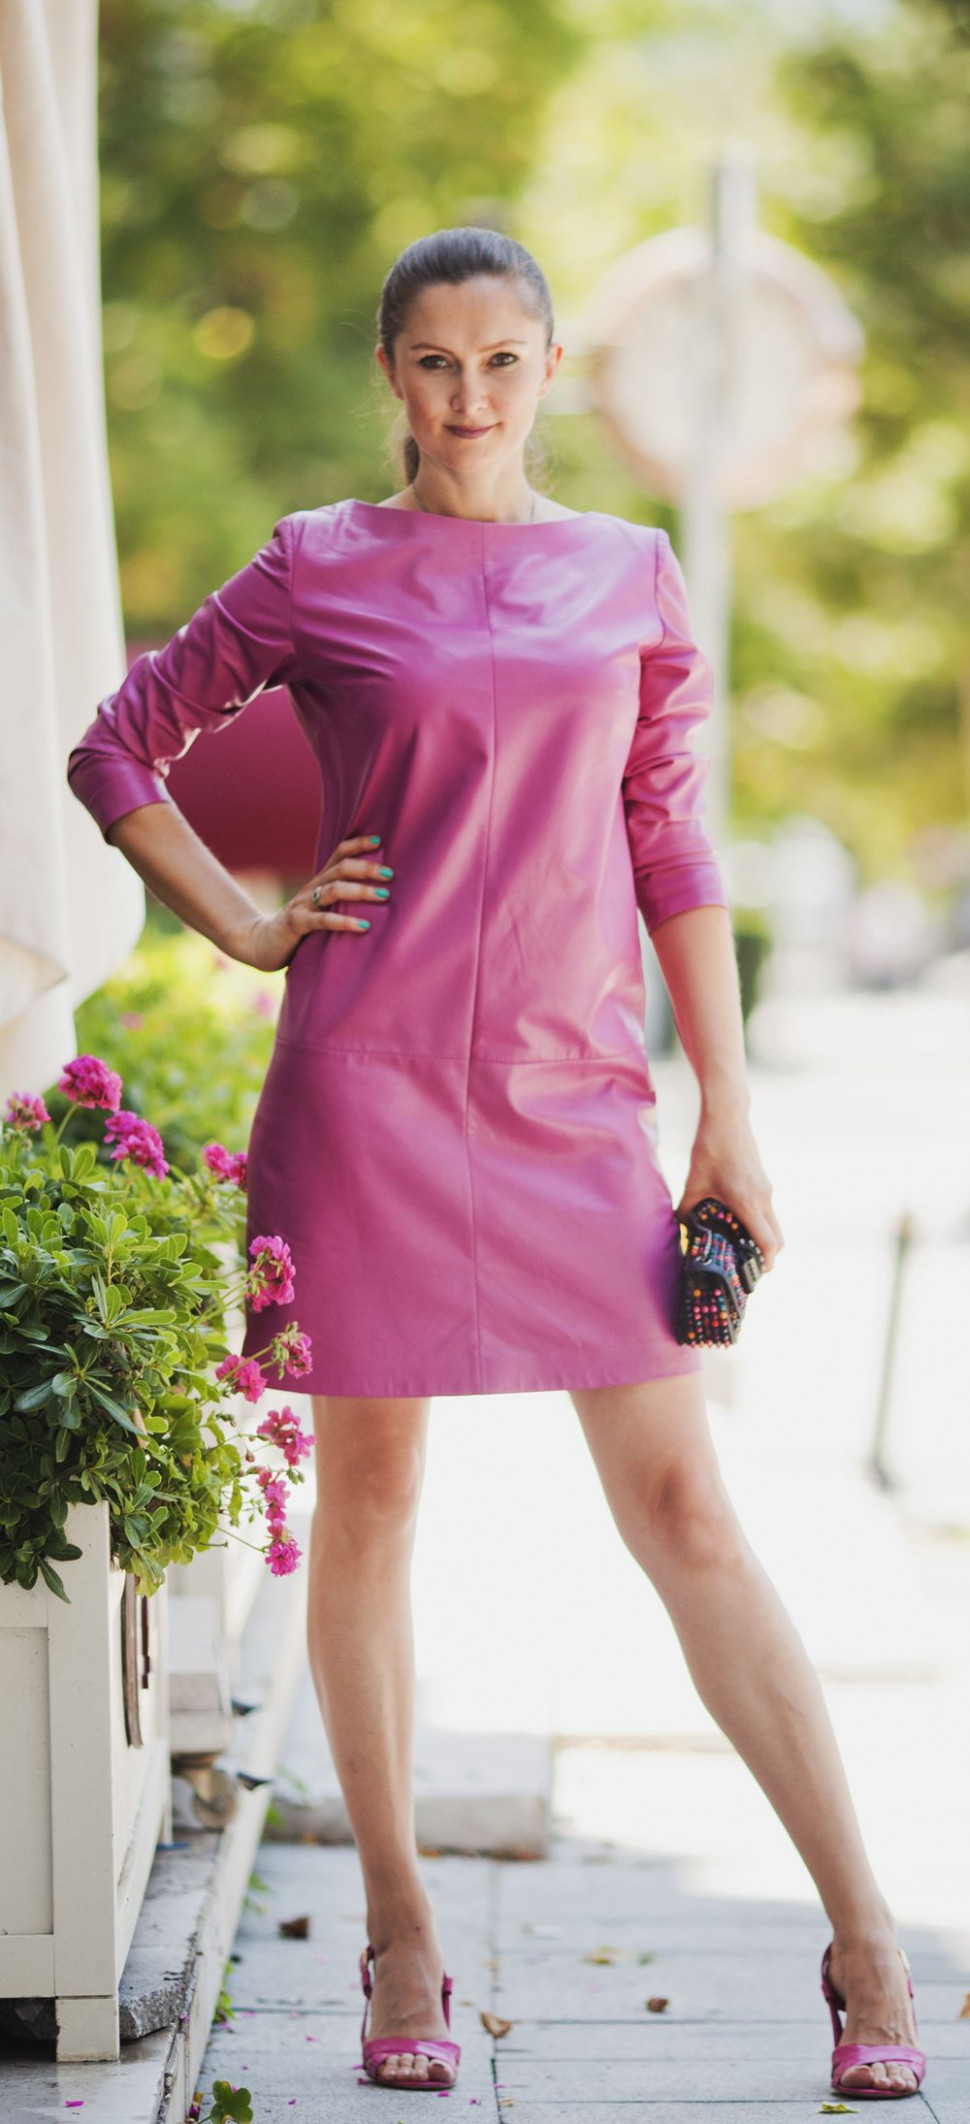 Pink leather dress by ADAMOFUR #inspiration #leather #leatherdress